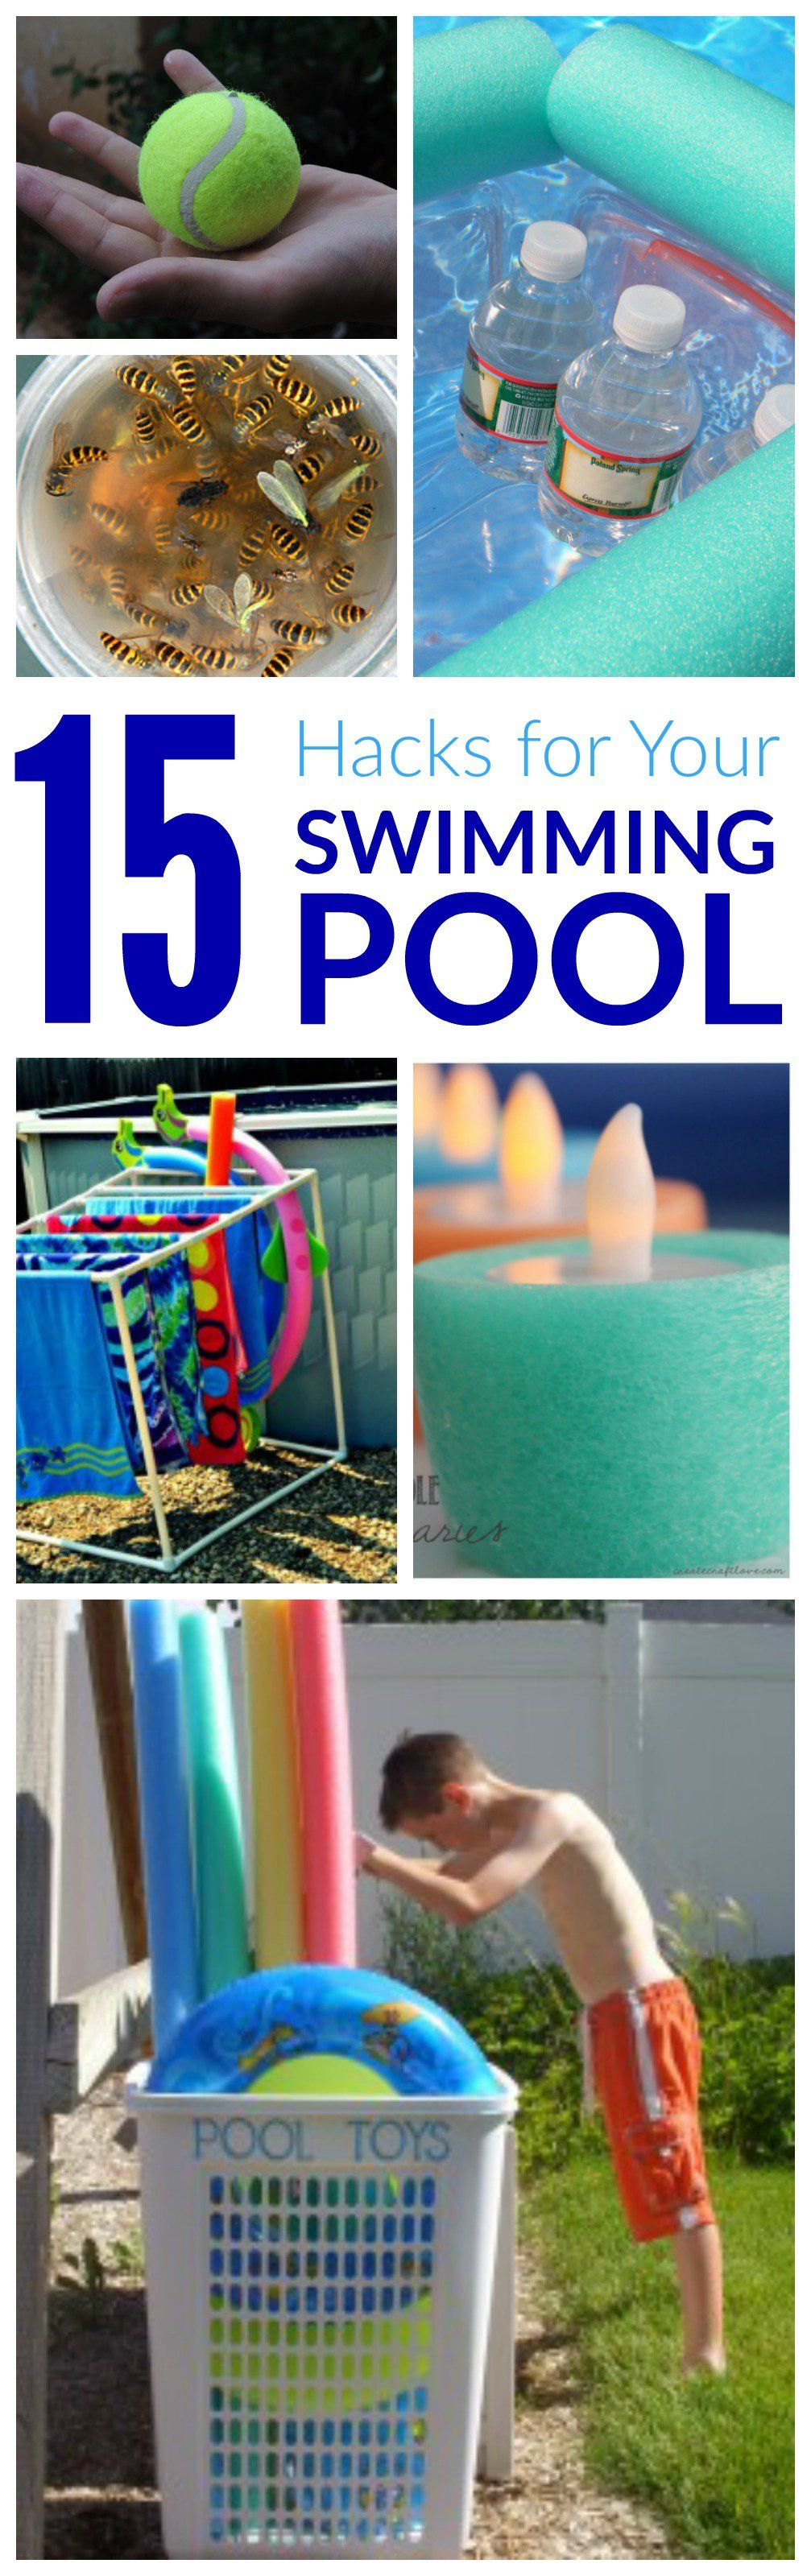 15 Swimming Pool Hacks For Summer Fun In The Sun With Kids With These Games And Activities